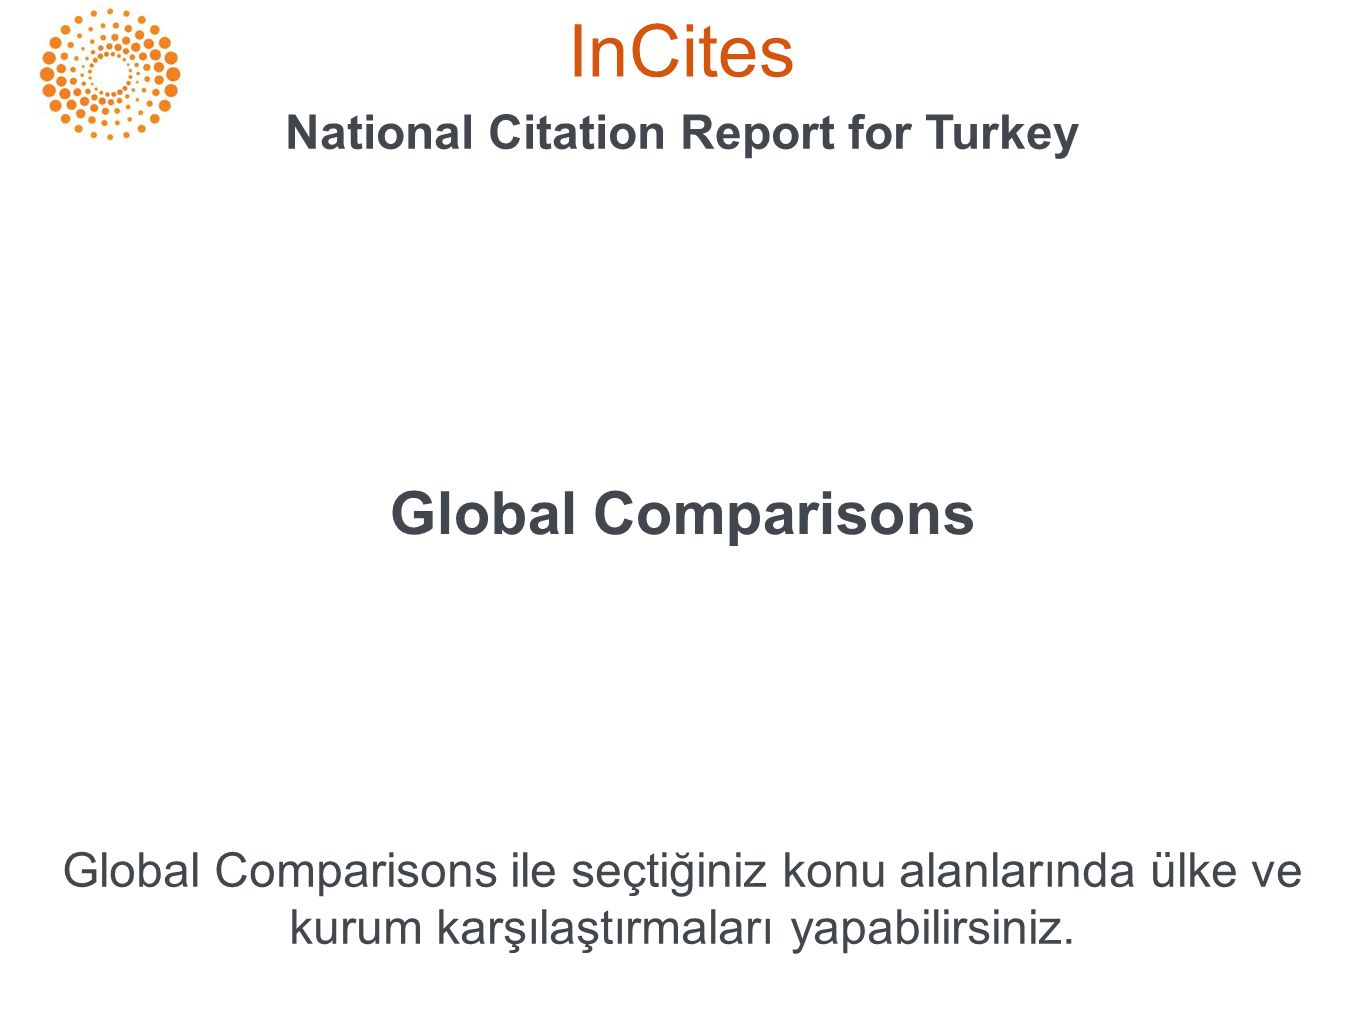 InCites National Citation Report for Turkey Global Comparisons Global Comparisons ile seçtiğiniz konu alanlarında ülke ve kurum karşılaştırmaları yapabilirsiniz.